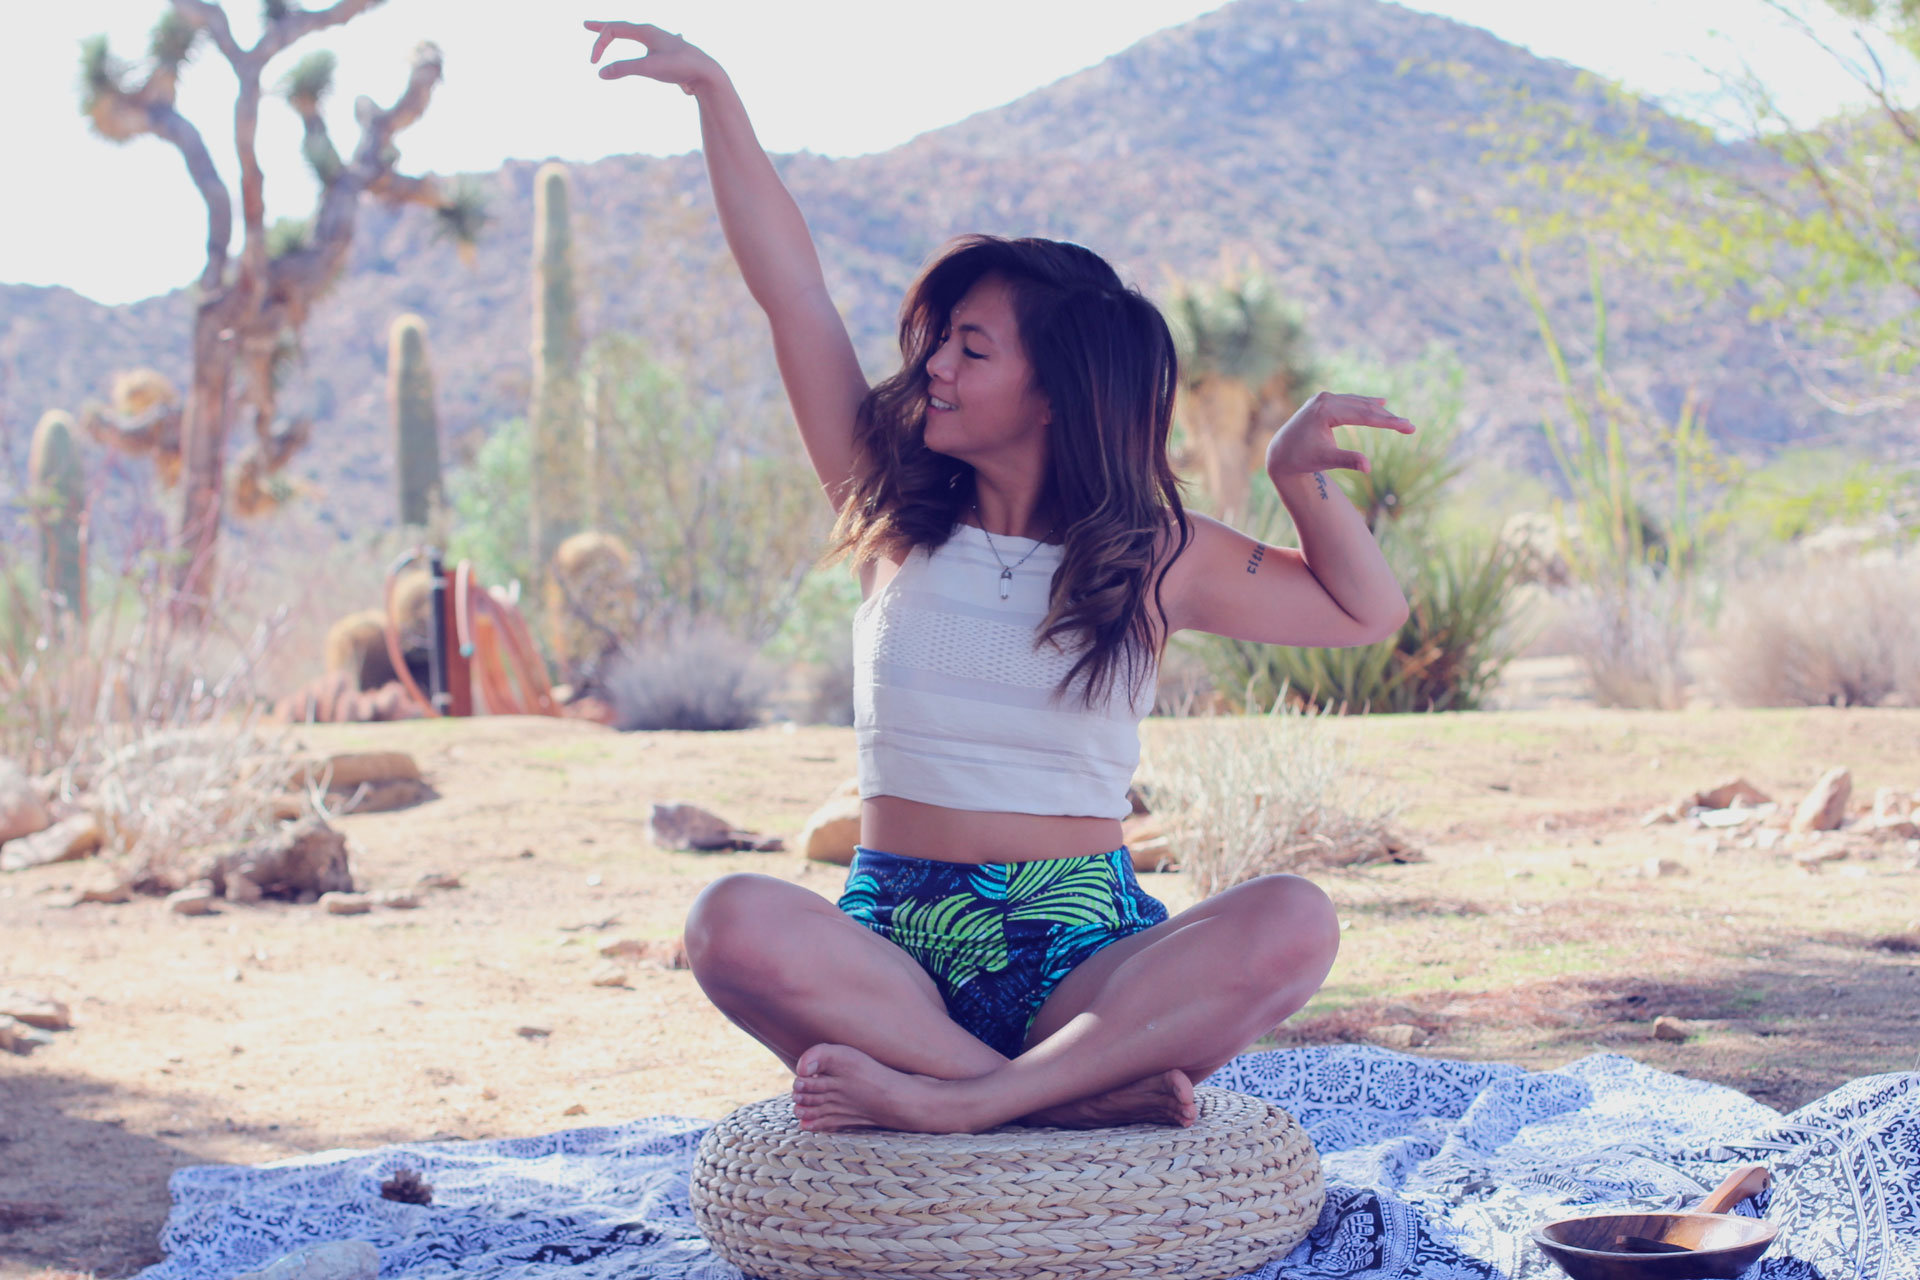 1. CONSCIOUS CREATOR VIDEO CREATION IMMERSION FOR HIGH VIBE ENTREPRENEURS - joshua tree | OCTOBER 17–20Get out of the city, away from the distractions and finally produce that compelling social campaign to launch your conscious brand with video.